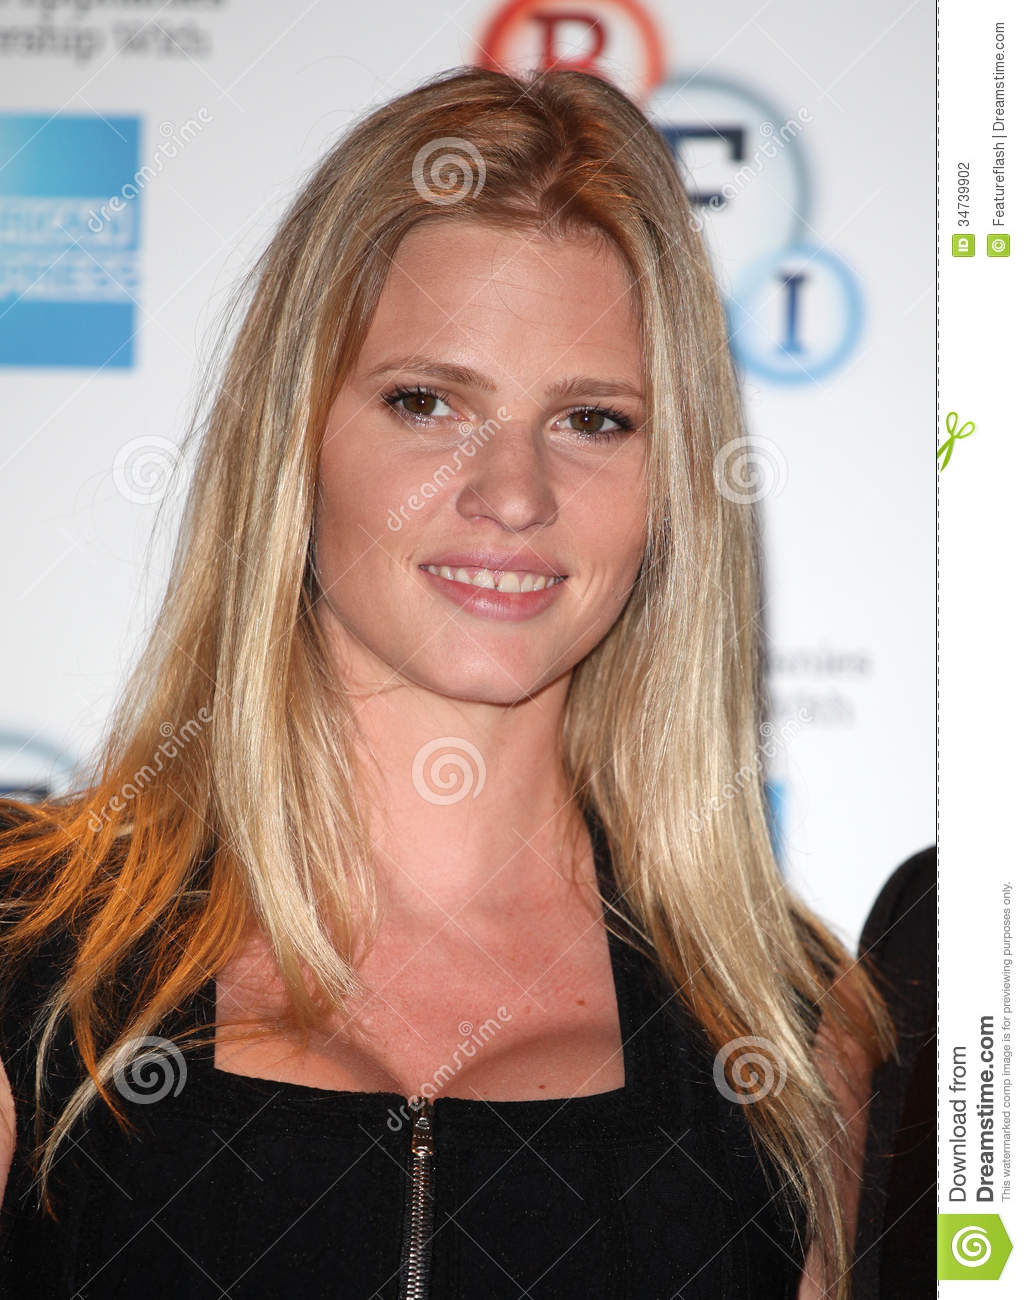 Lara Stone attending a photocall before introducing the film 'The Spy ...